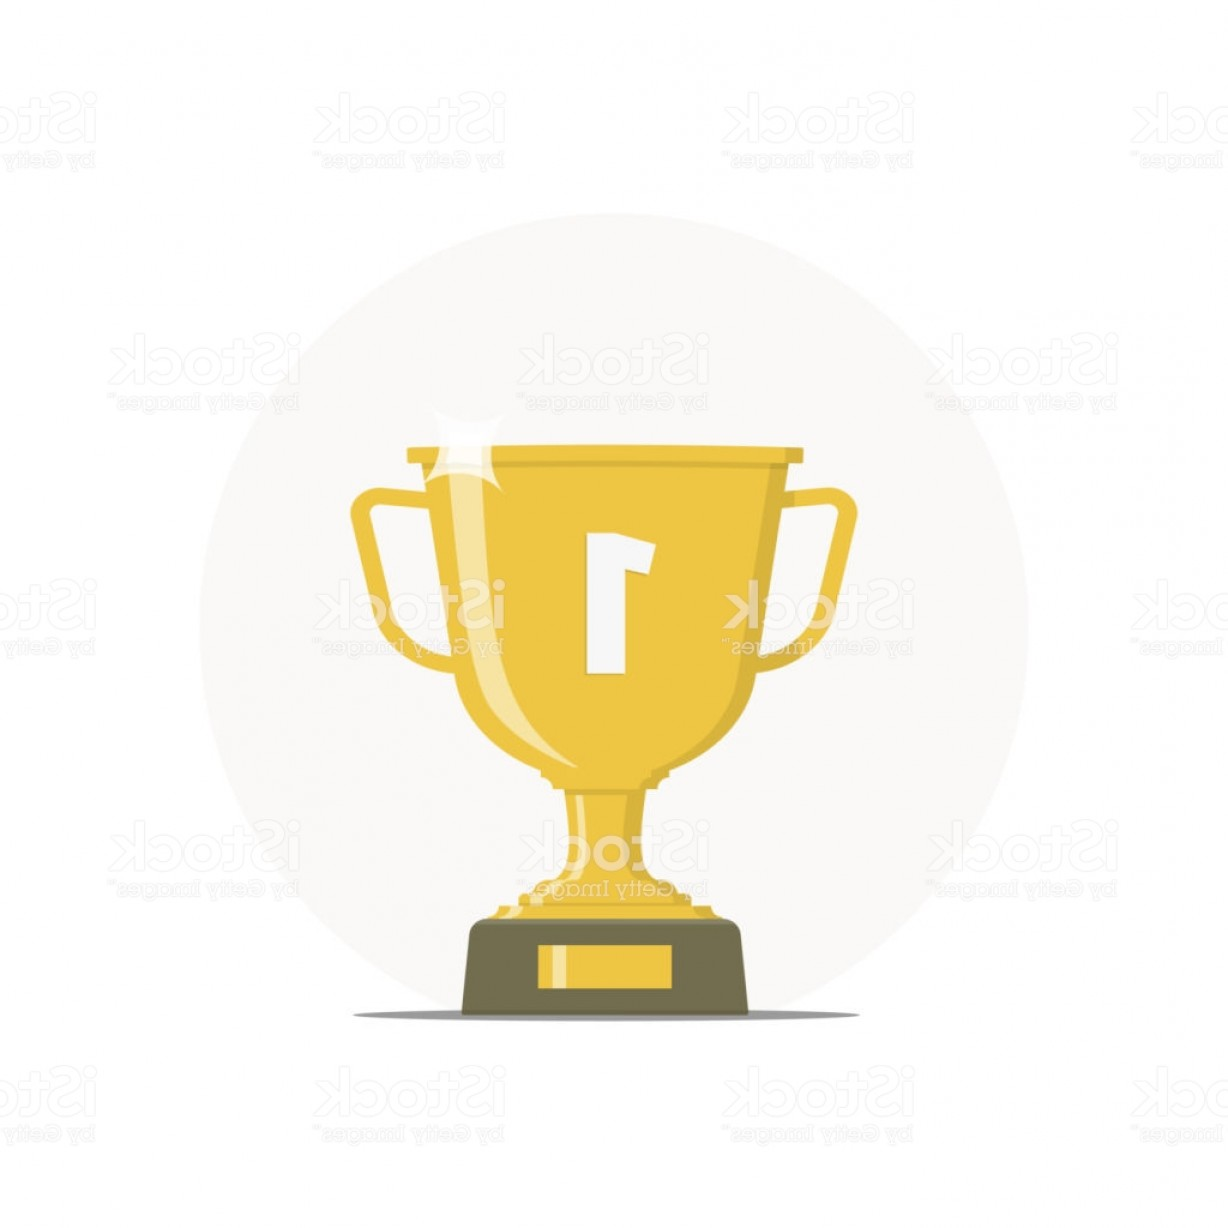 Gold Trophy Vector: Icon Winner Cup Gold Trophy First Place Vector Illustration In Flat Style Gm